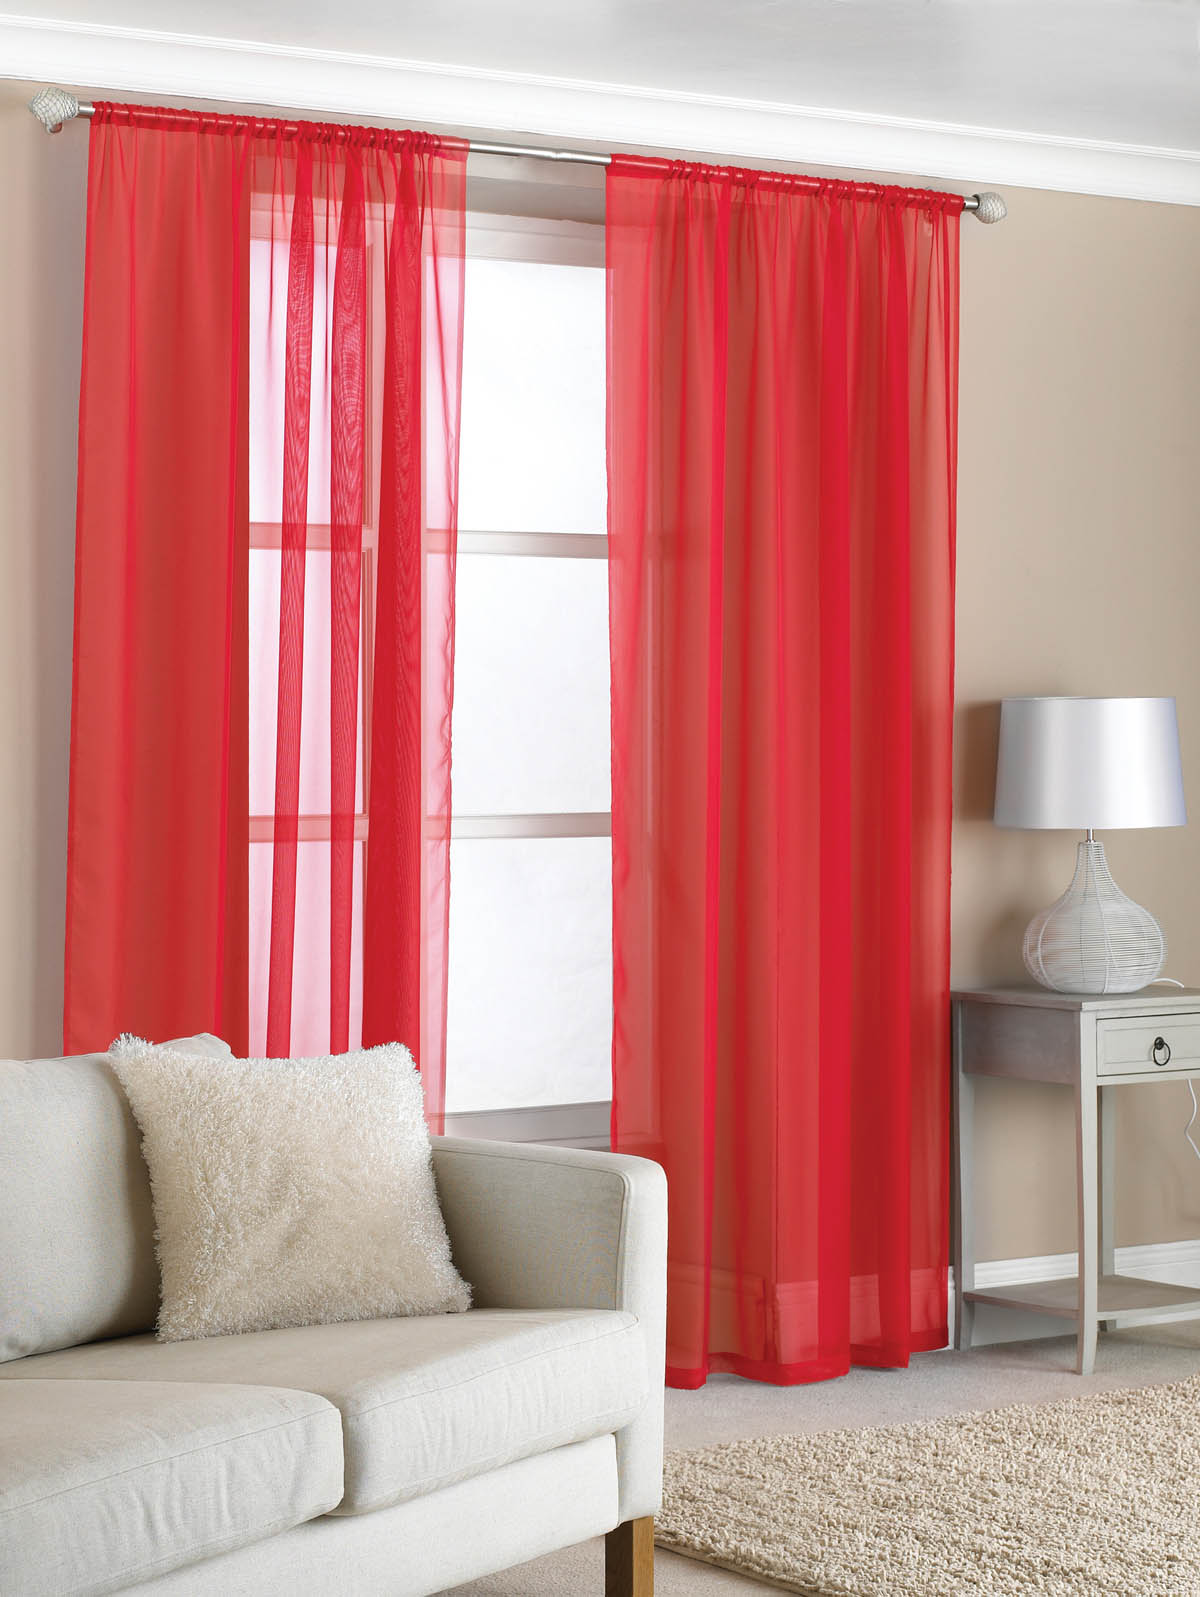 Next day delivery and free returns available. Amazing Red And White Curtains For Bedroom Design Black Living Room Atmosphere Ideas Wrestler Tna Color Crimson Hair Roh Phormium Apppie Org